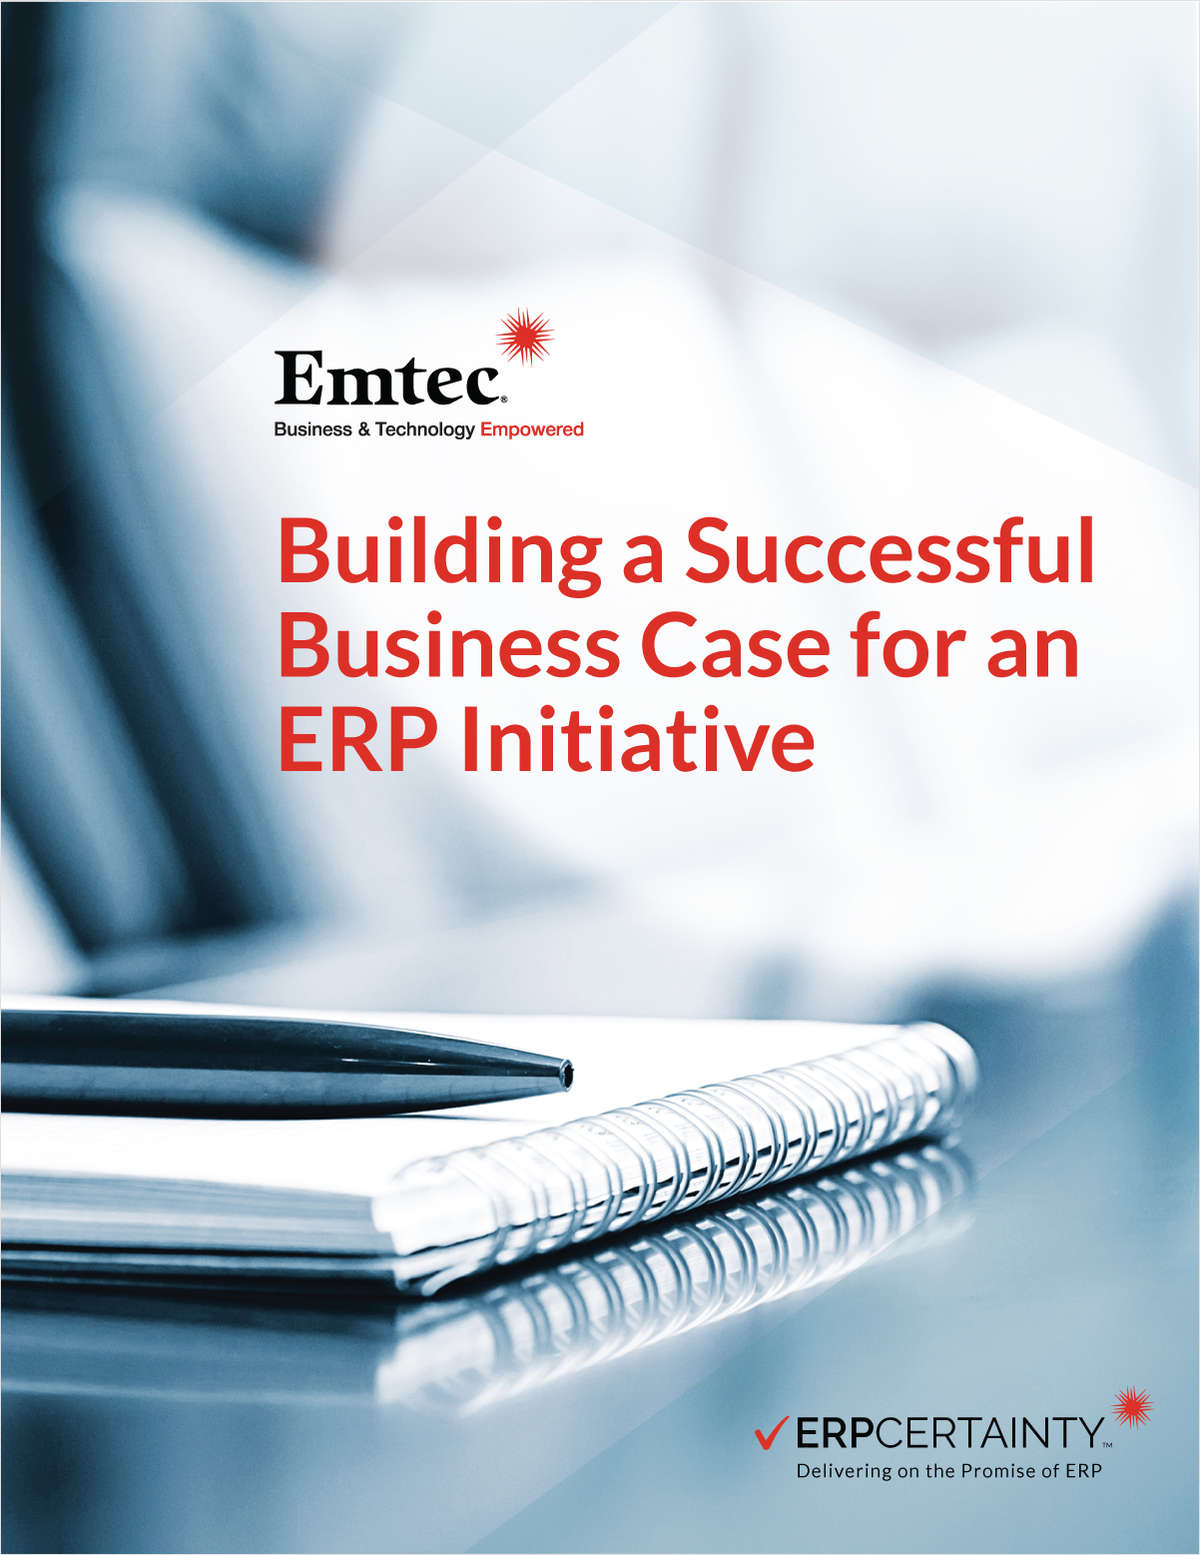 Building a Successful Business Case for an ERP Initiative